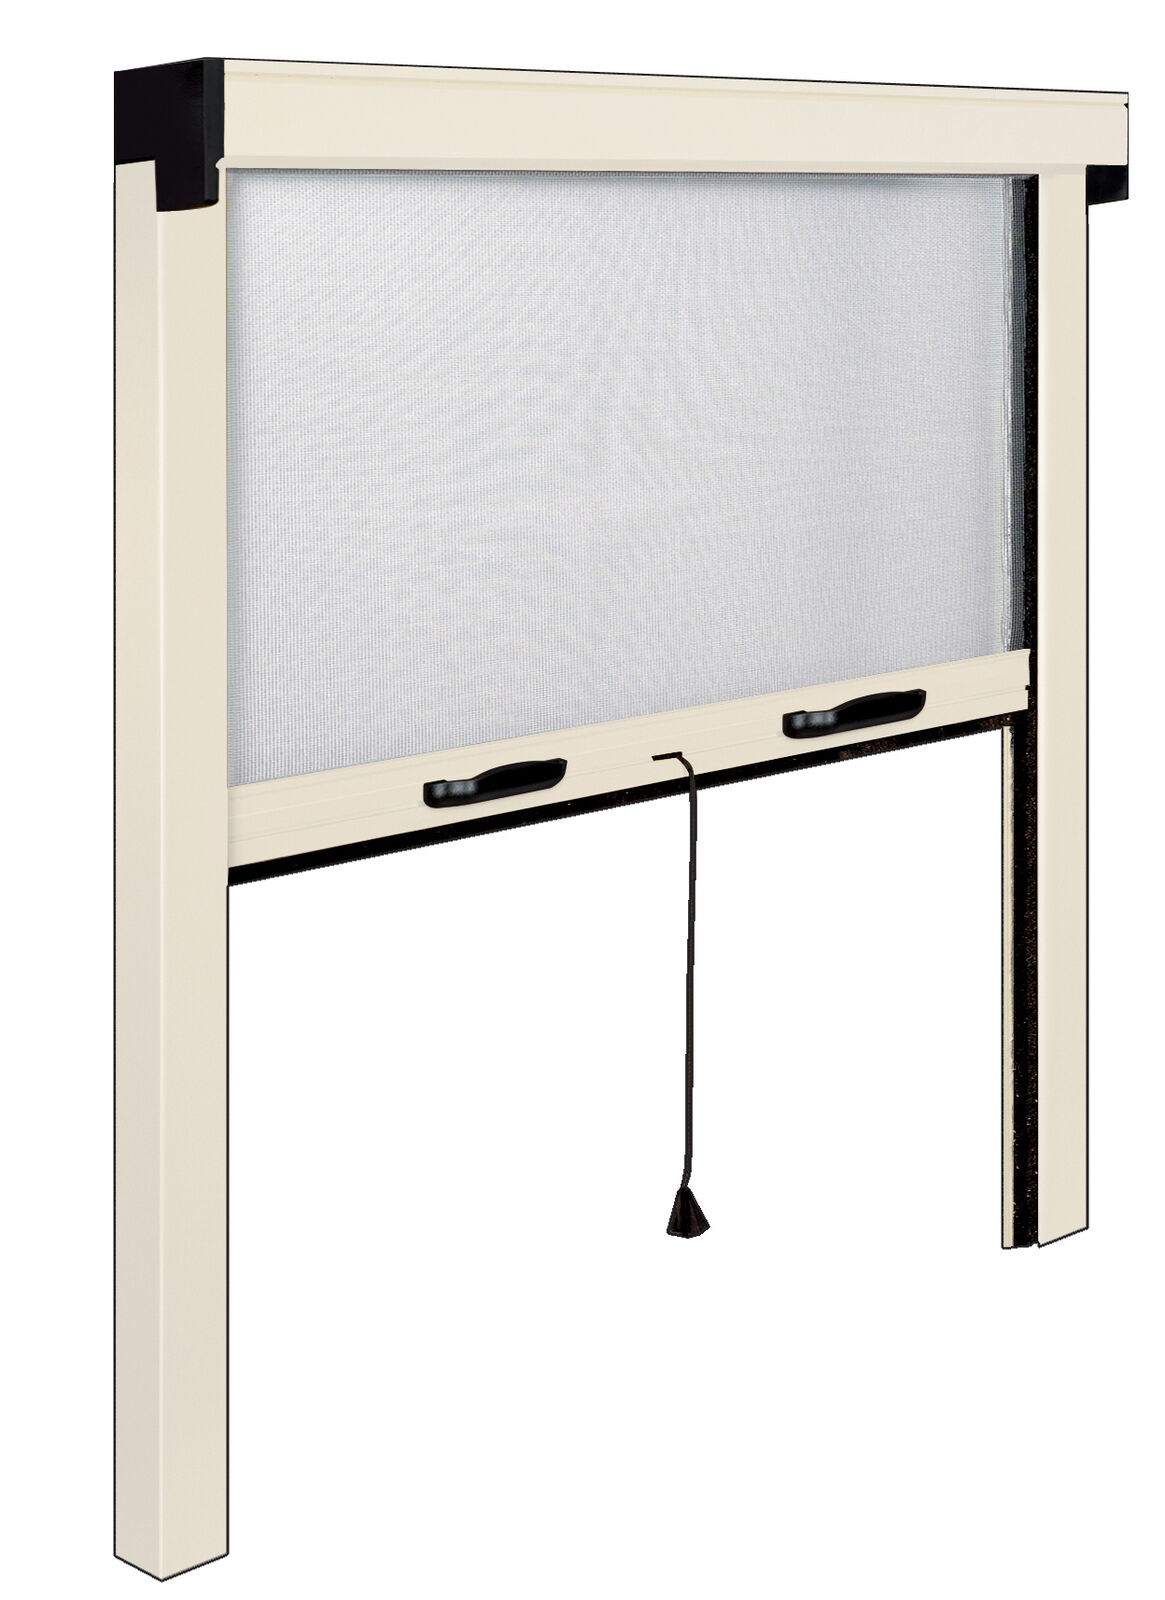 Mosquito net IRS-CE aluminum ivory cm 160x170 greenical for window windows